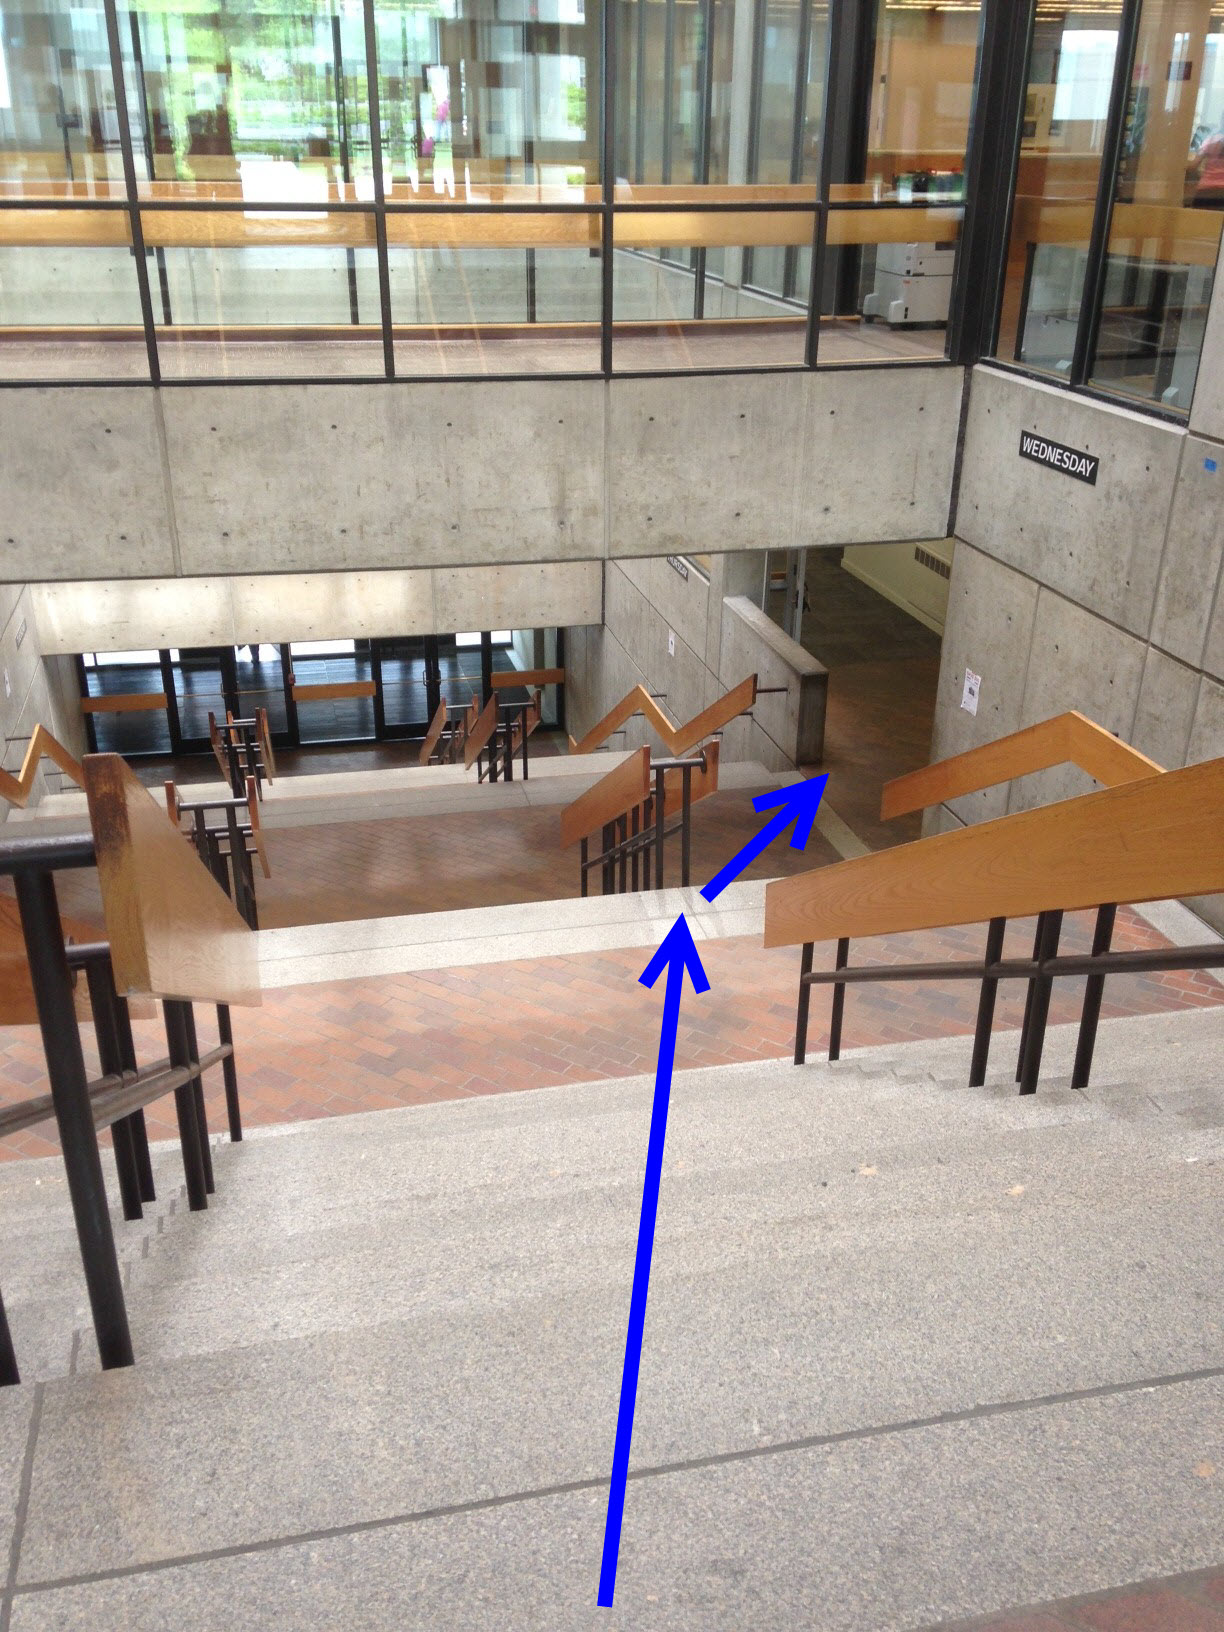 Photo of the atrium stairs of O'Neill Library showing path to O'Neill classrooms 245-257